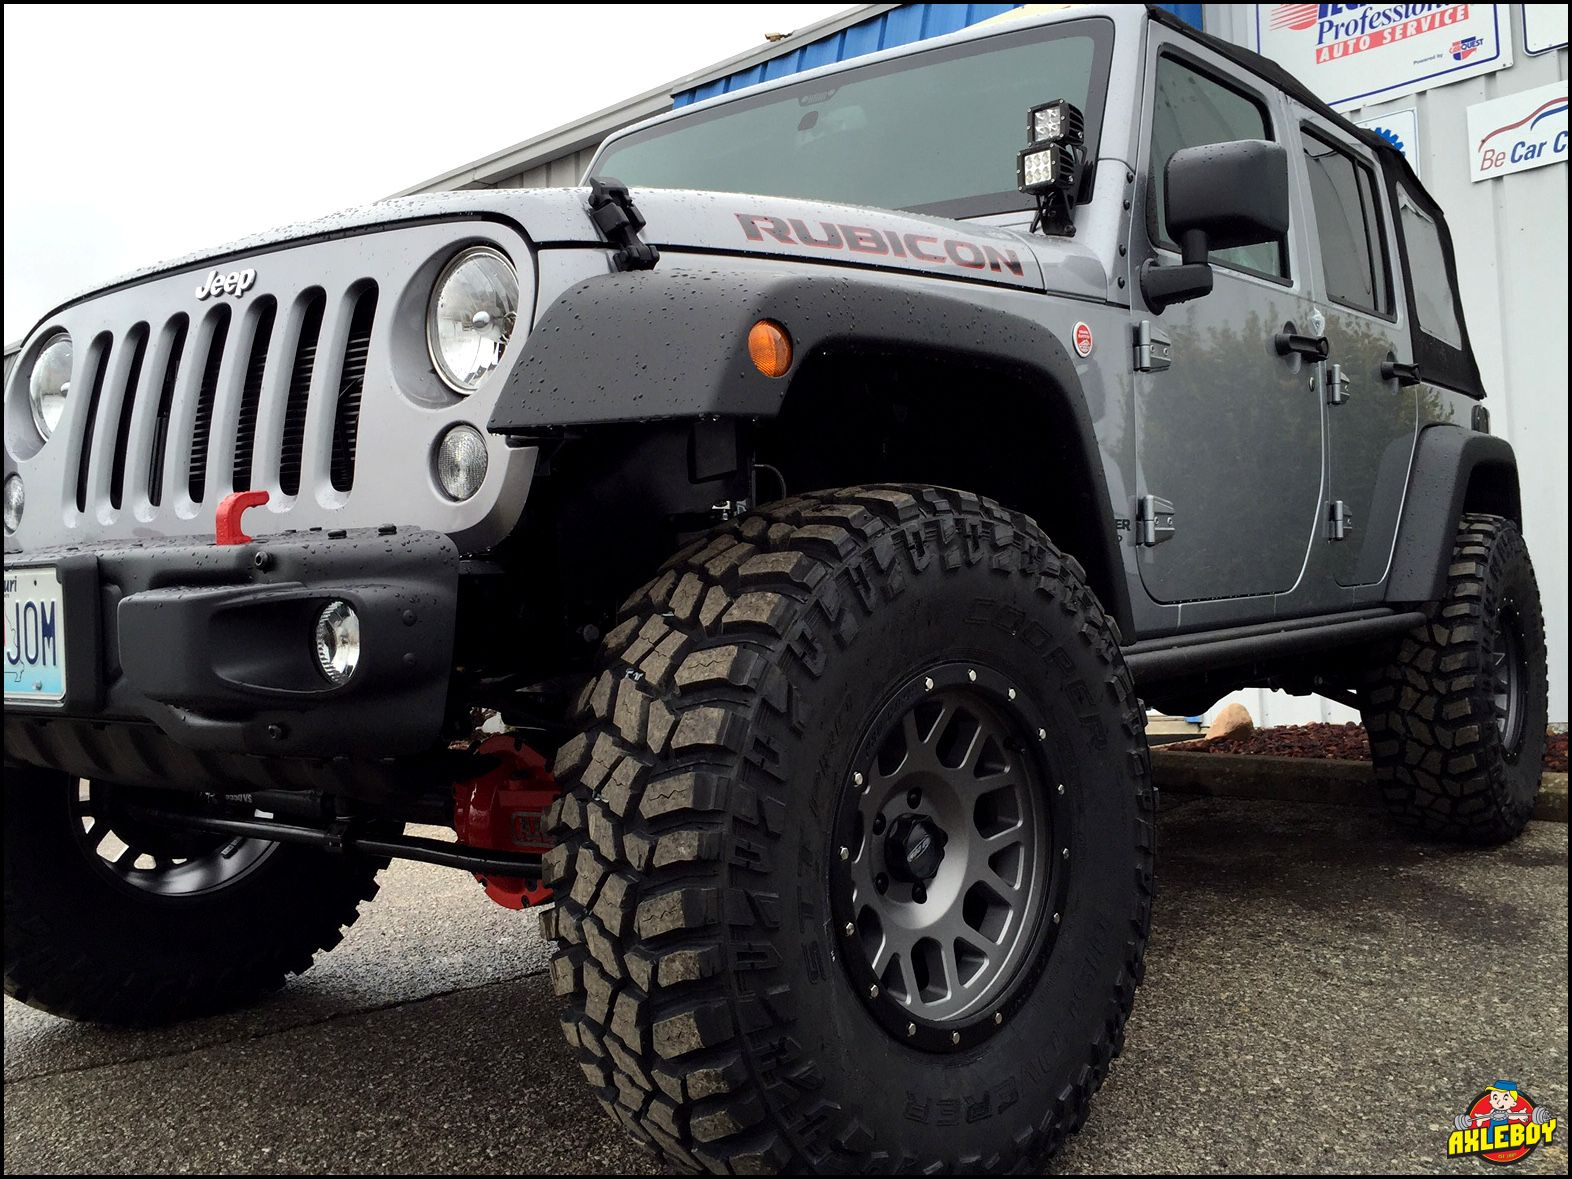 2016 Jeep Wrangler Rubicon Riding On A 3 Teraflex Lift And 37 Cooper Stt Pro Tires More Pi Jeep Wrangler Unlimited Jeep Wrangler Rubicon 2016 Jeep Wrangler